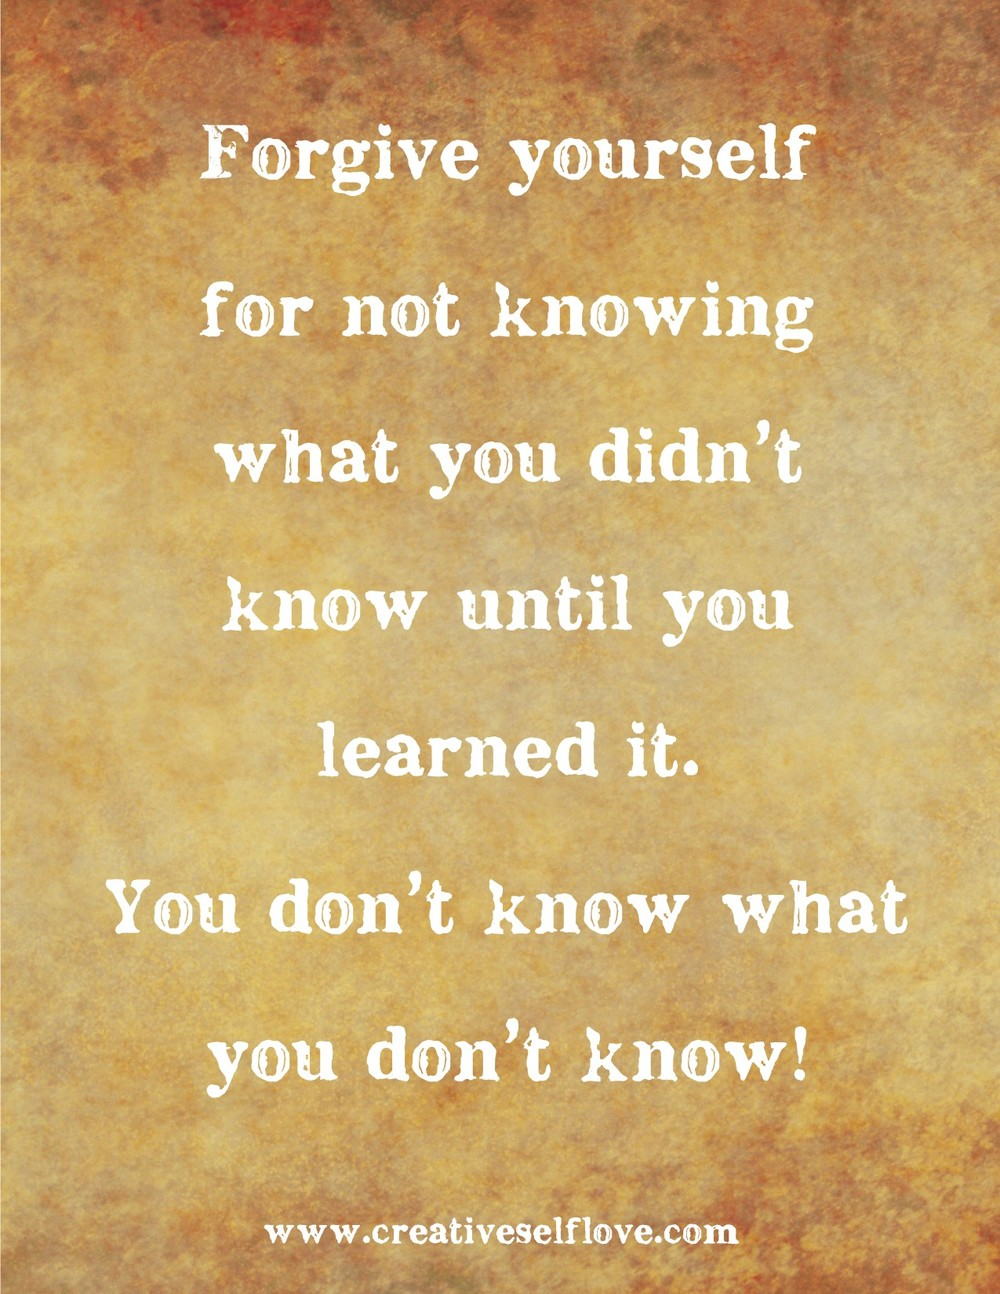 Forgive Yourself for Not Knowing – Graphics by author; background: